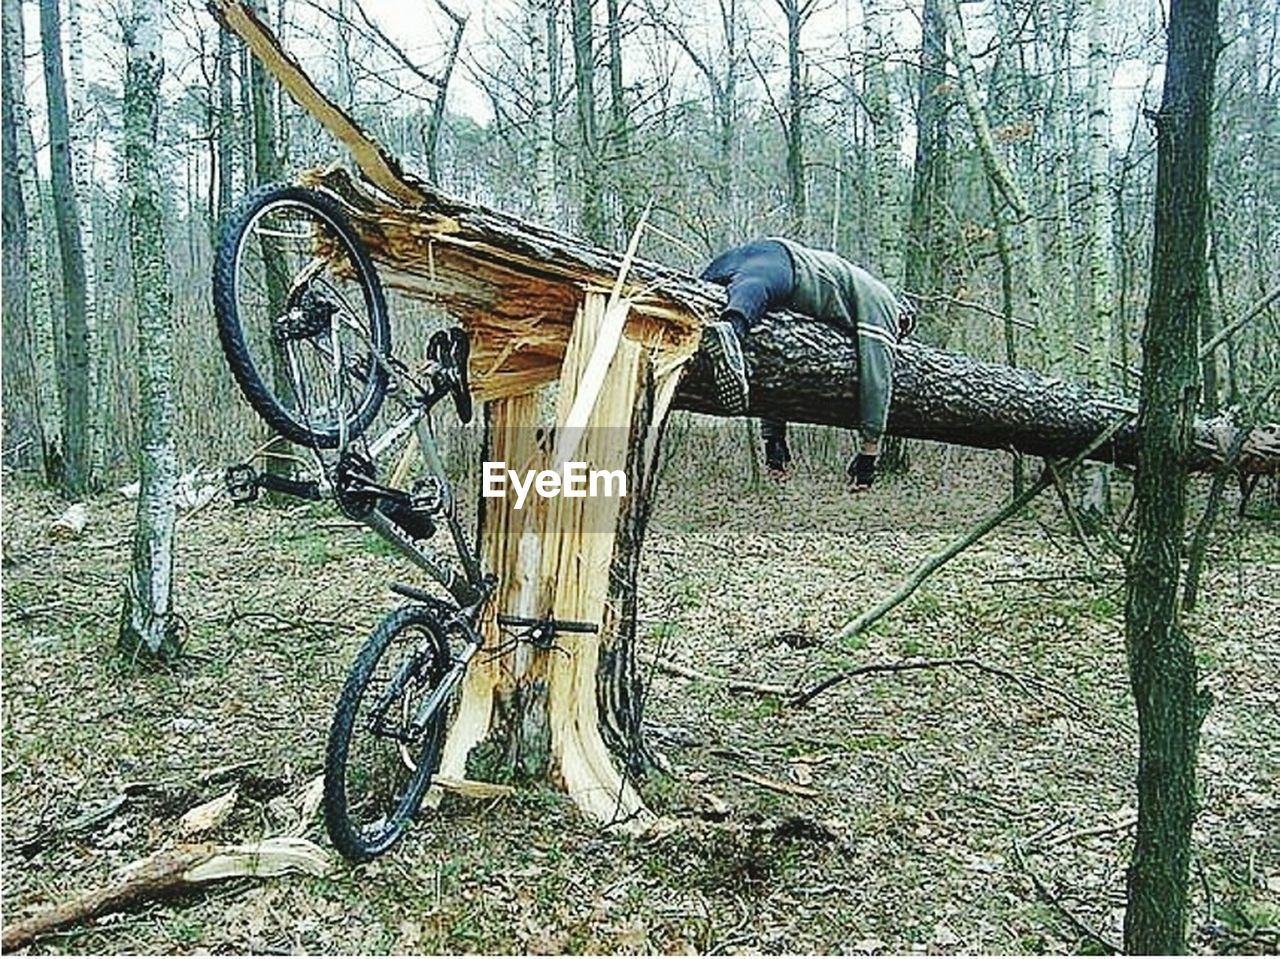 tree, bicycle, no people, outdoors, day, transportation, tree trunk, stationary, nature